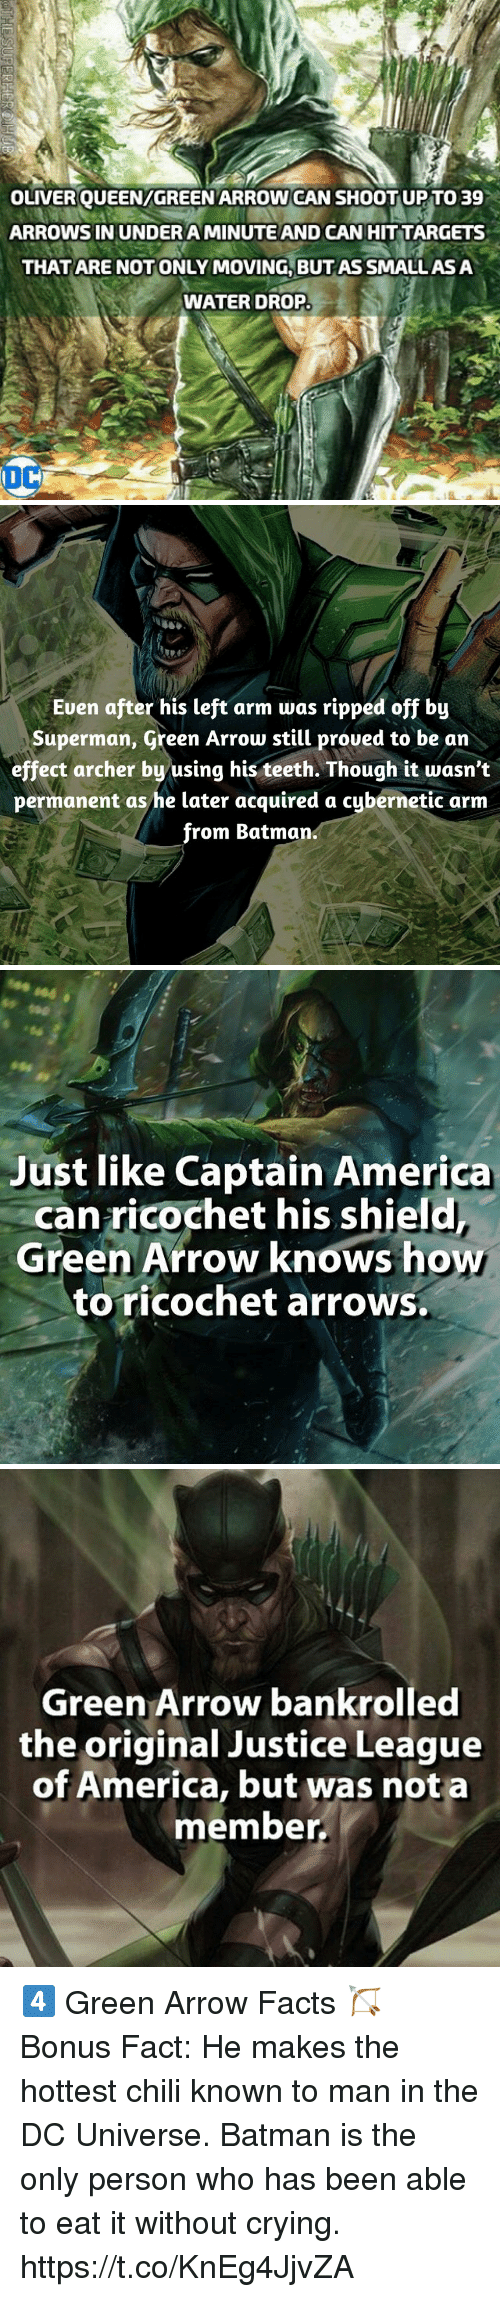 oliverqueengreenarrow can shoot up to 39 arrows in undera minute and